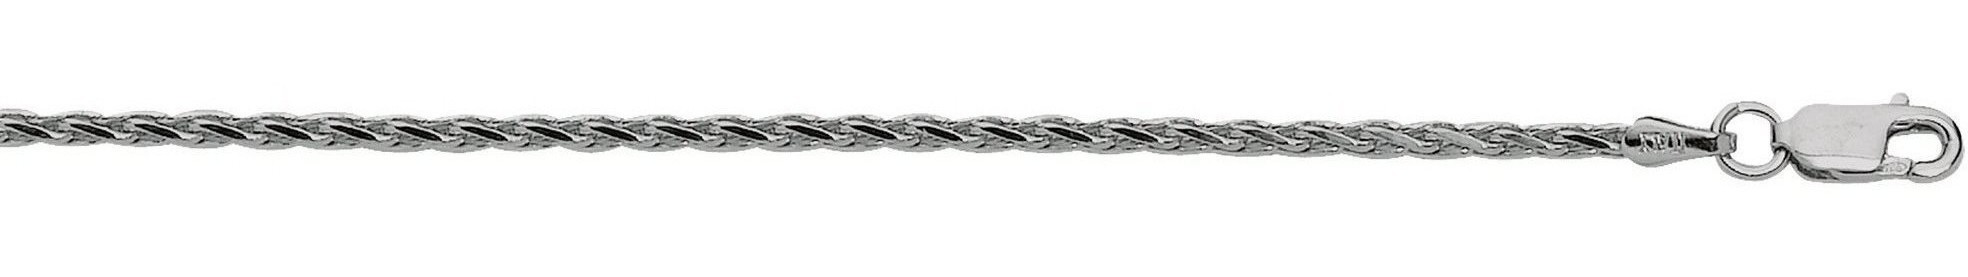 "24"" 2.2mm (0.09"") Rhodium Plated Polished Diamond Cut 925 Sterling Silver Spiga Chain w/ Lobster Clasp"